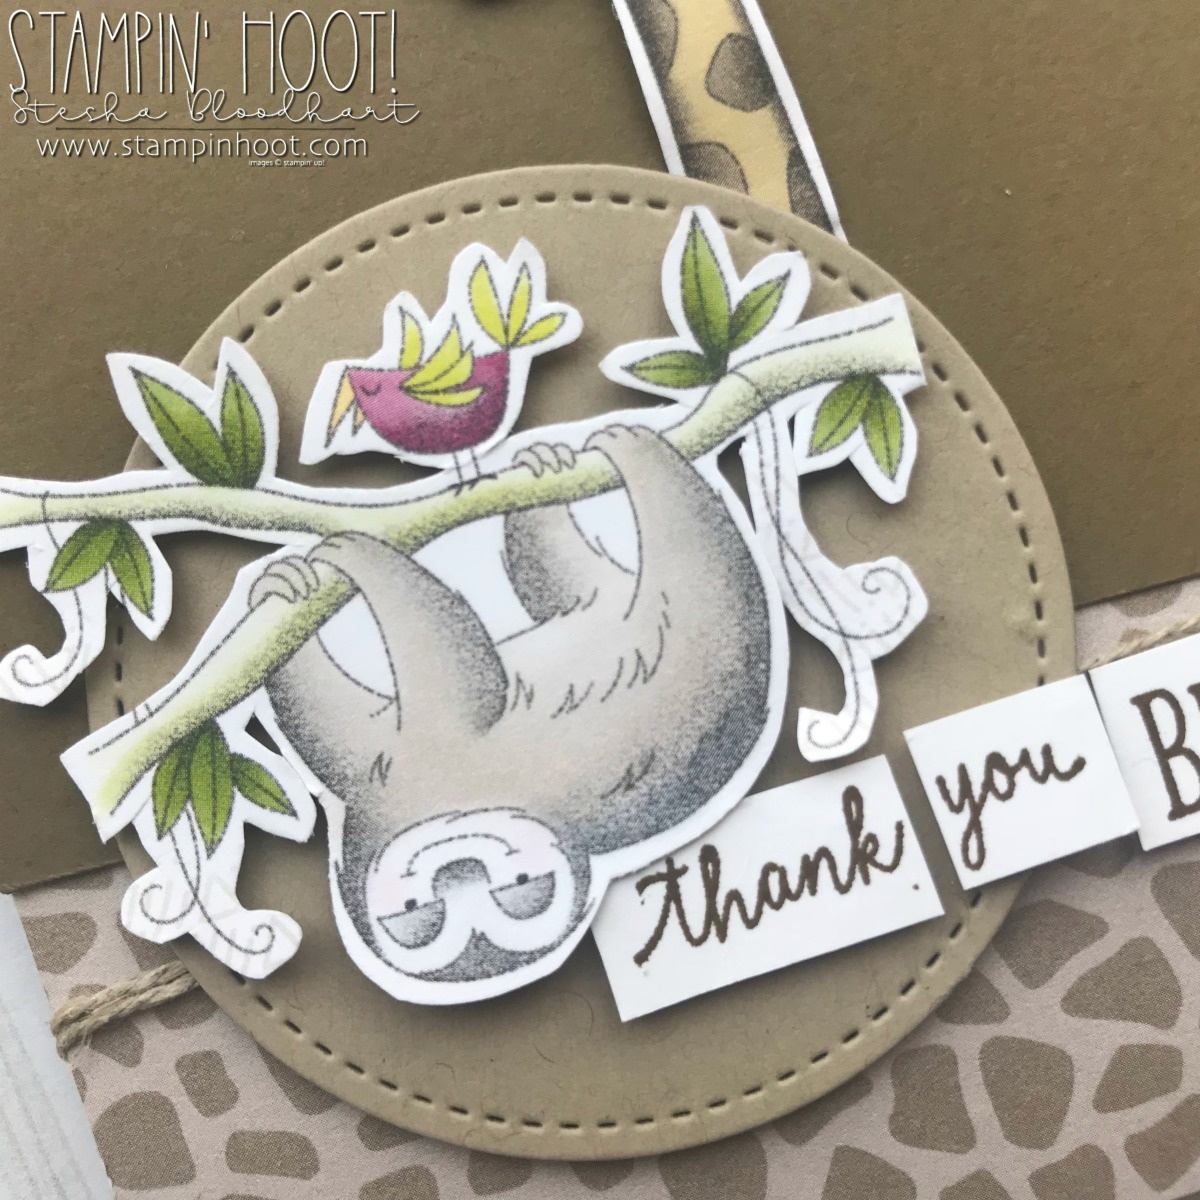 Animal Expedition Suite of Products from 2018-2019 Annual Stampin' Up! Catalog. Card by Stesha Bloodhart, Stampin' Hoot! #steshabloodhart #stampinhoot #gdp142